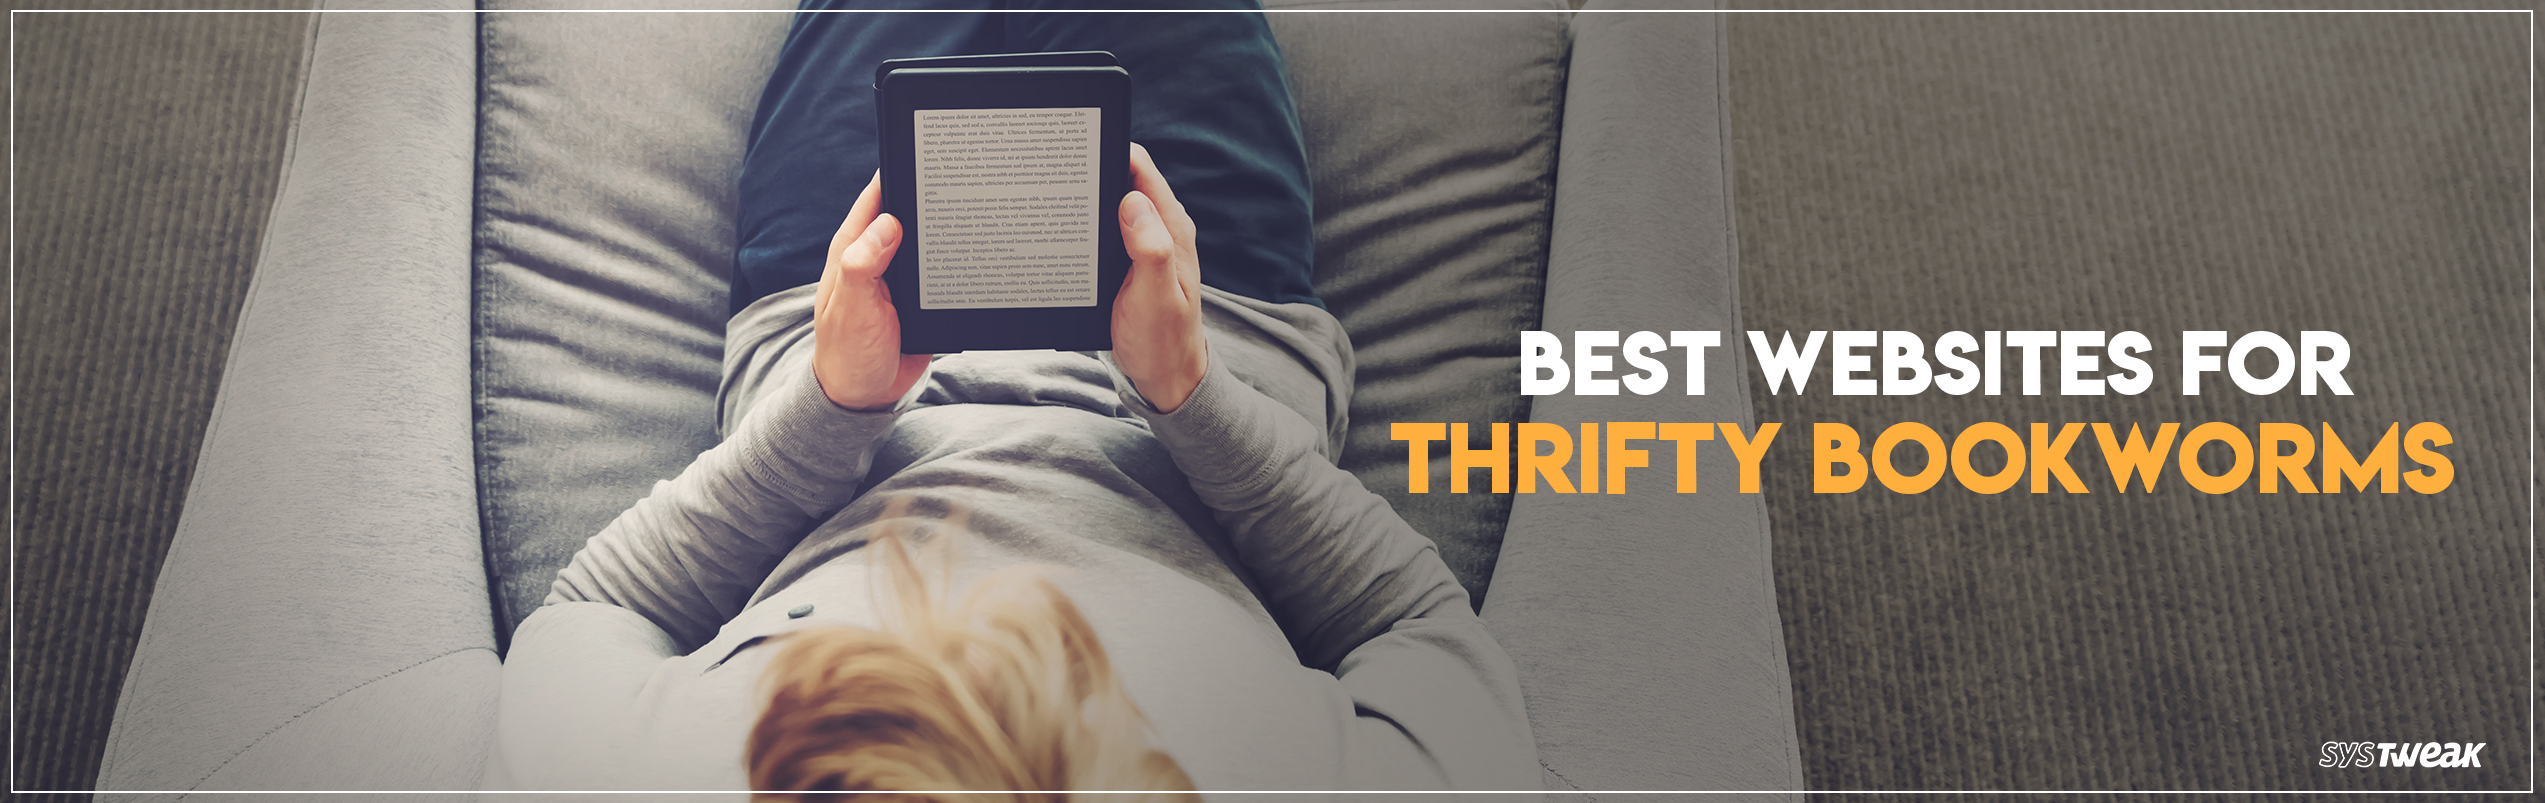 Hey, Bookworms! Here are 6 Best Websites to Read Books Online